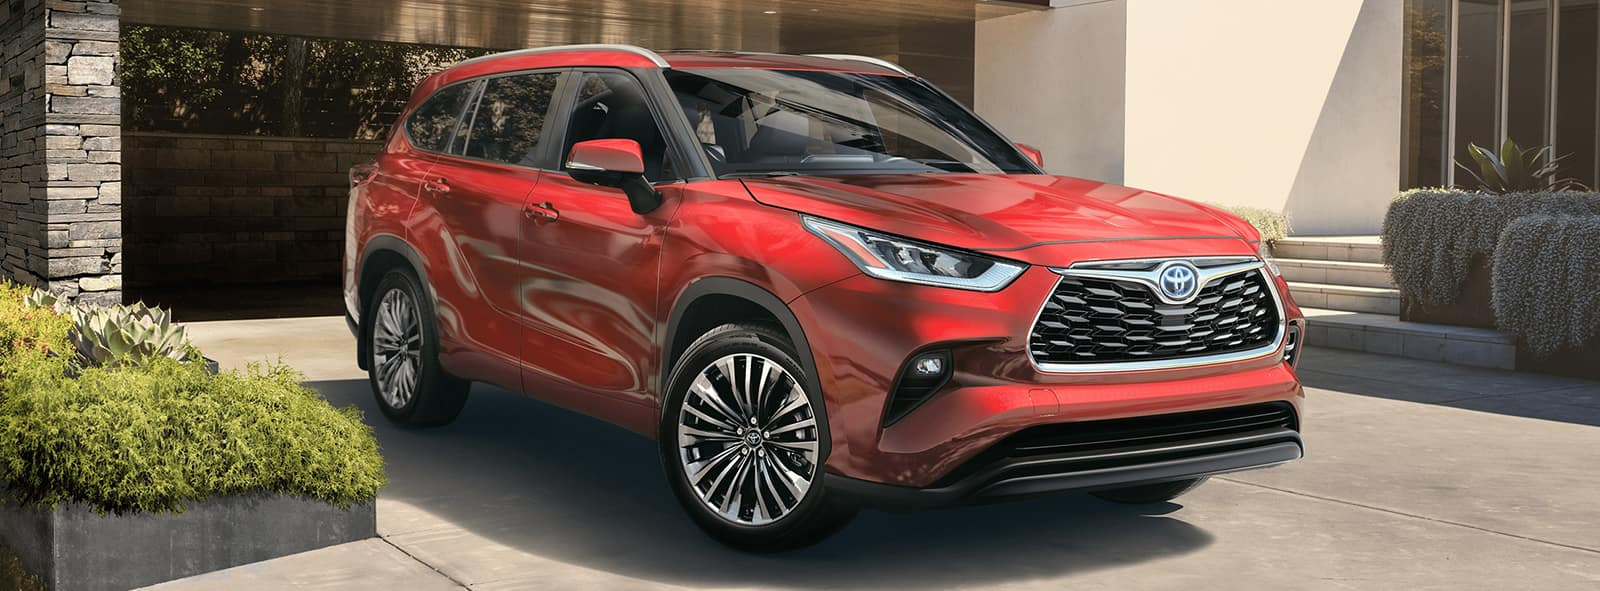 2020 Highlander Arriving Soon